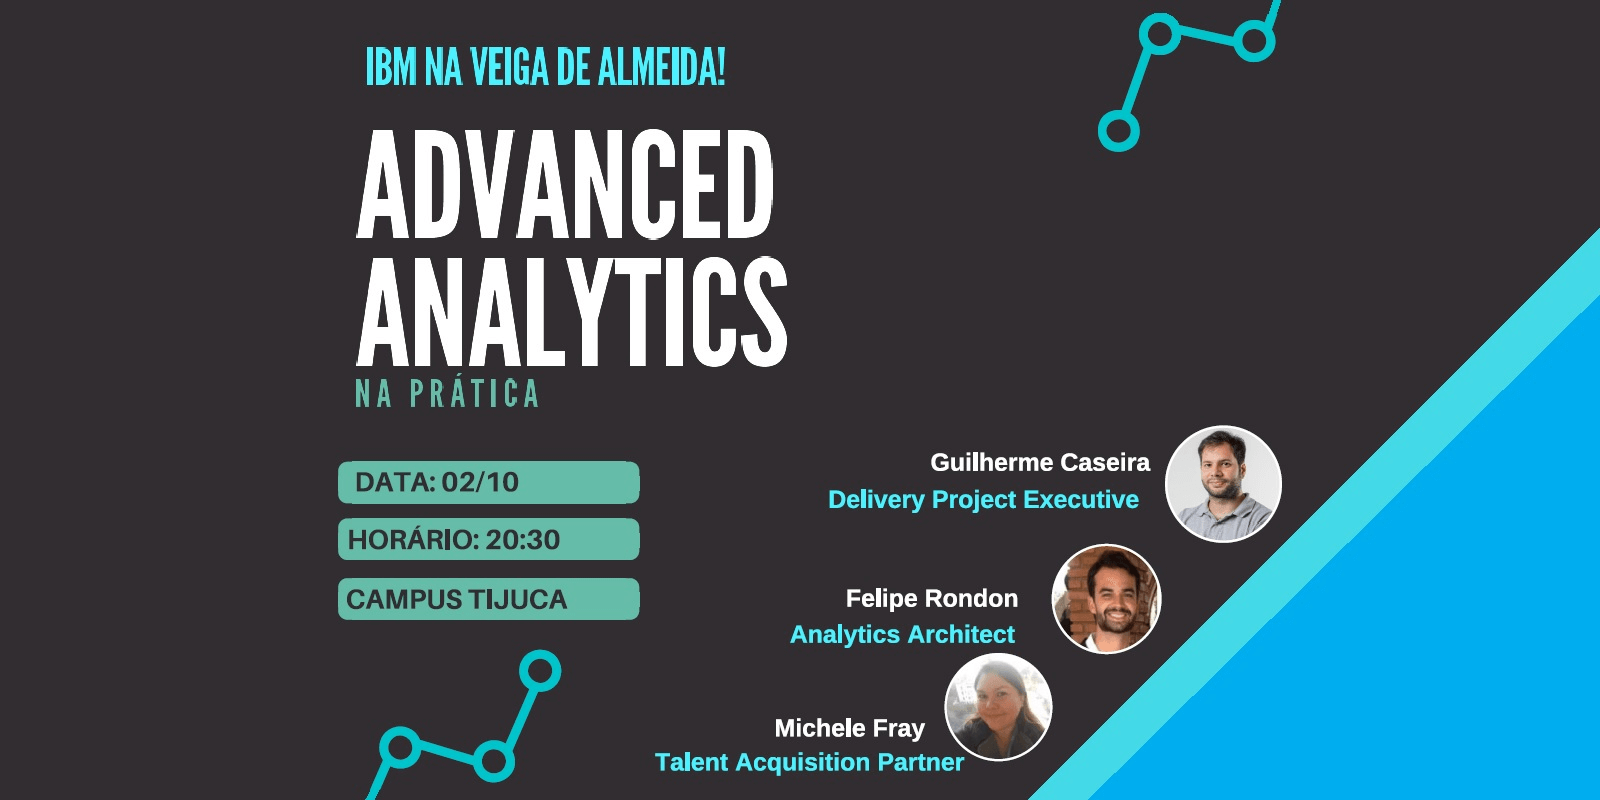 "O Prof. Dr. Eng. Fernando Hideo Fukuda, CEO na Fukuda Solutions, Coordenador do Curso de Engenharia da Computação e do Curso de Ciência da Computação e Professor no Campus Tijuca da UVA, organizou o Seminário ""Advanced Analytics na Prática"" com a Michele Fray, Talent Acquisition Partner, na LA Talent Acquisition, na IBM Human Resources, da IBM."